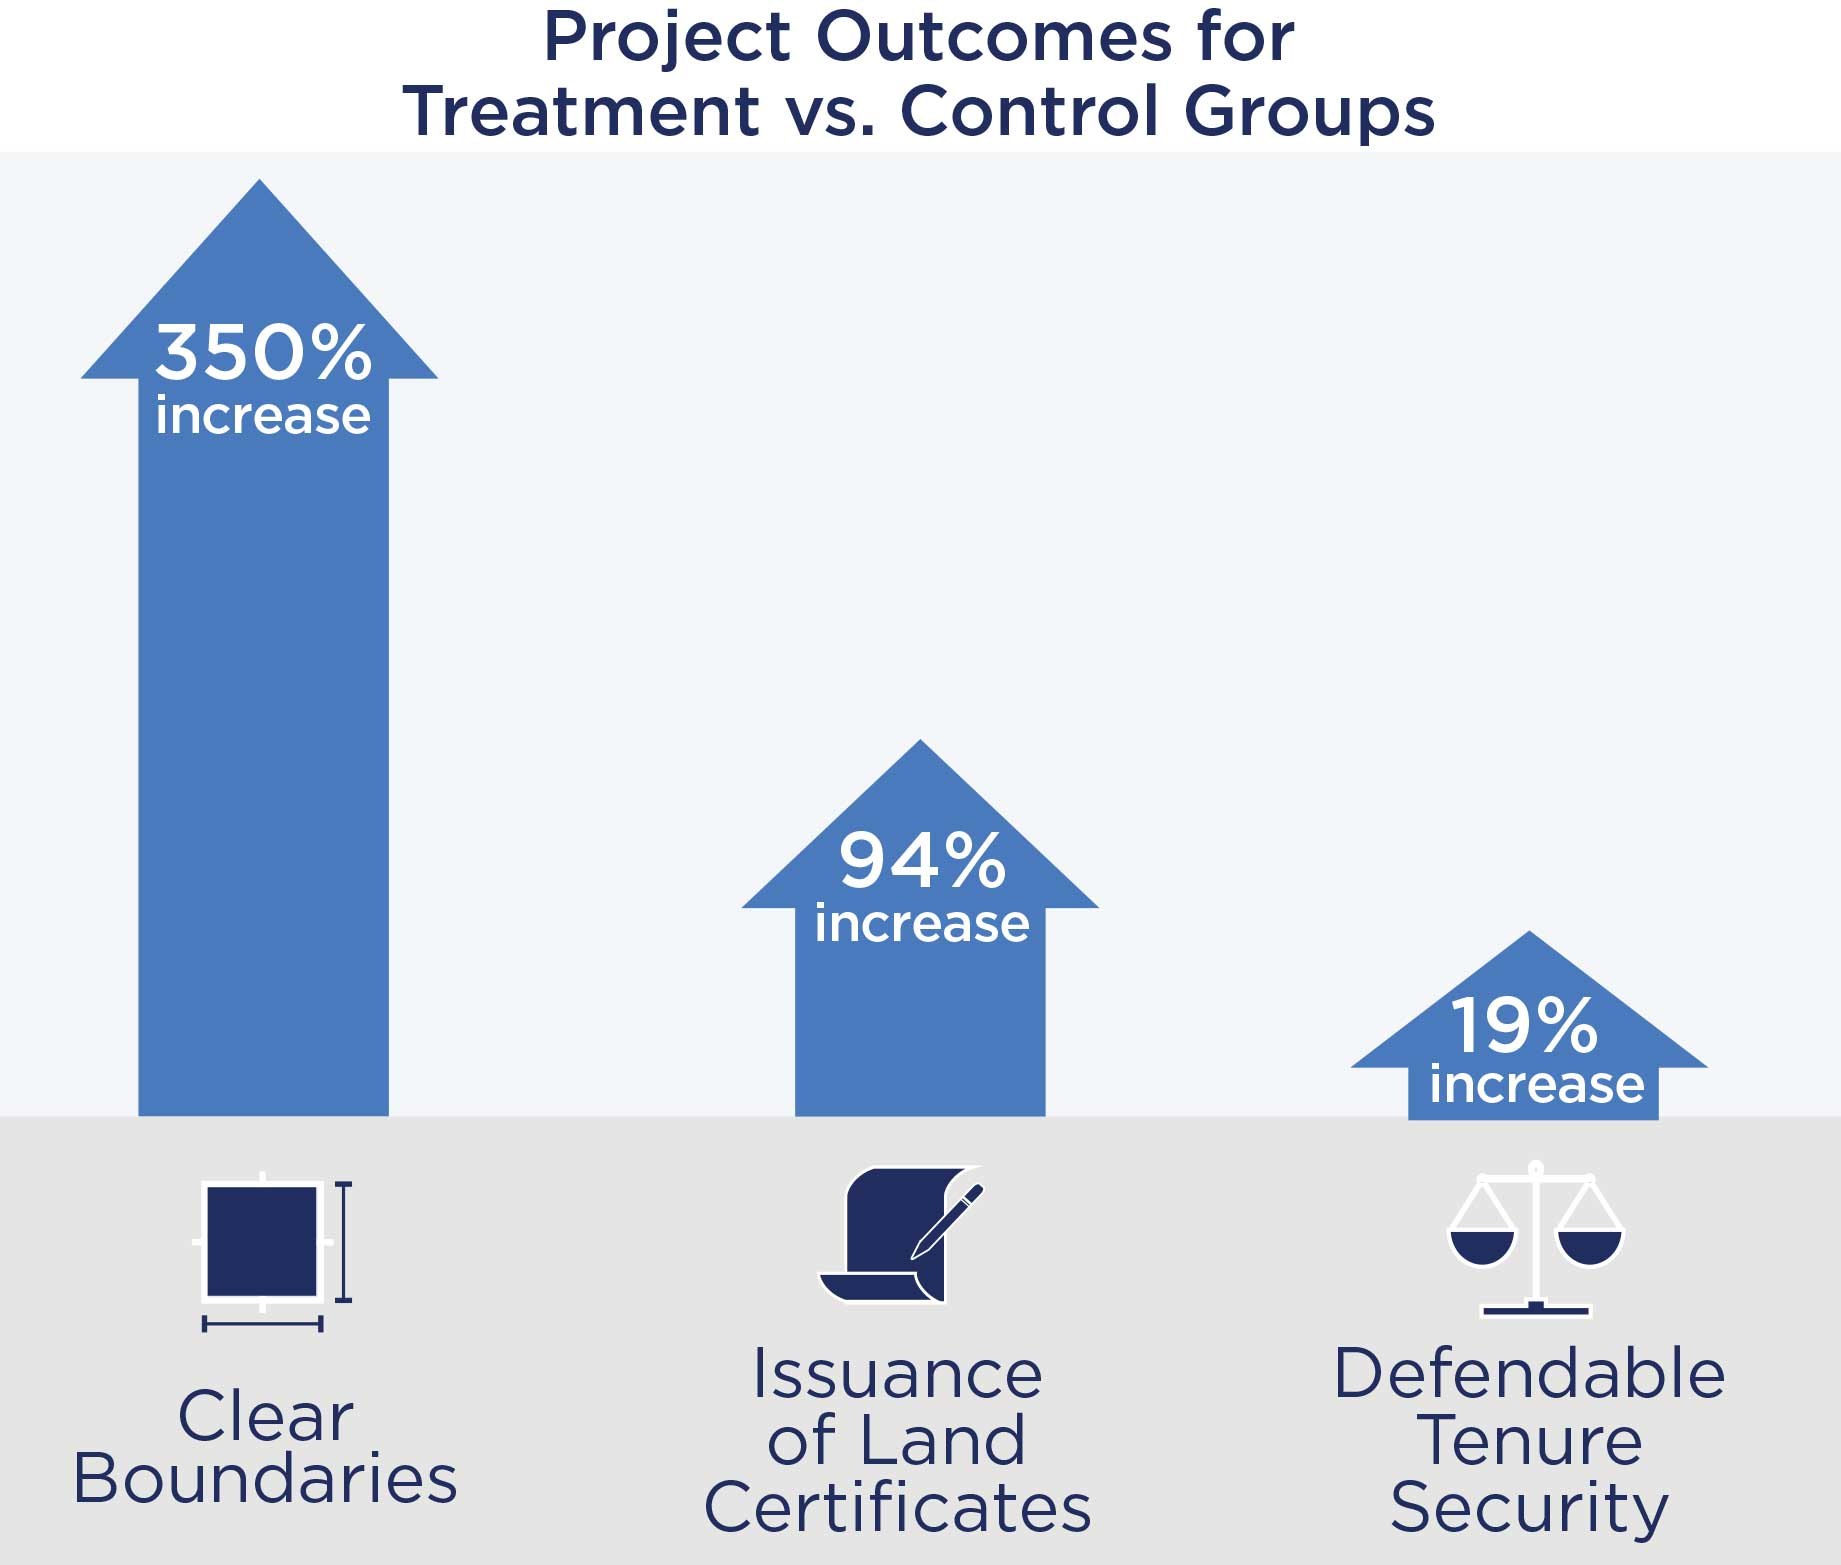 Grahpic of Project Outcomes for Treatment vs. Control Groups